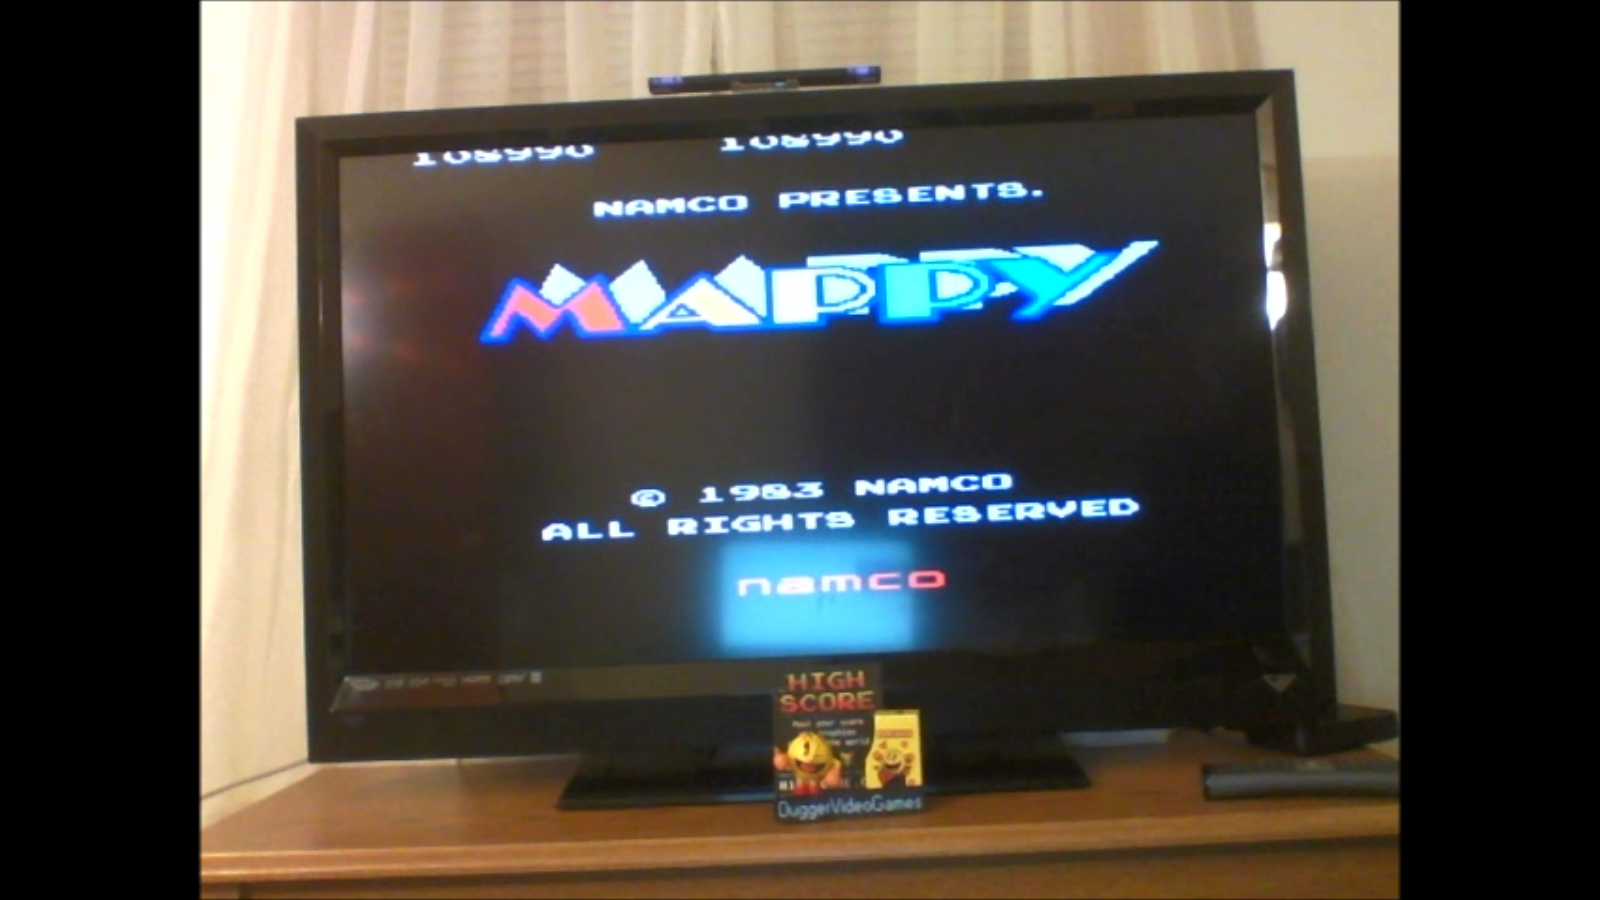 DuggerVideoGames: Mappy (Arcade Emulated / M.A.M.E.) 108,990 points on 2017-01-18 23:51:20